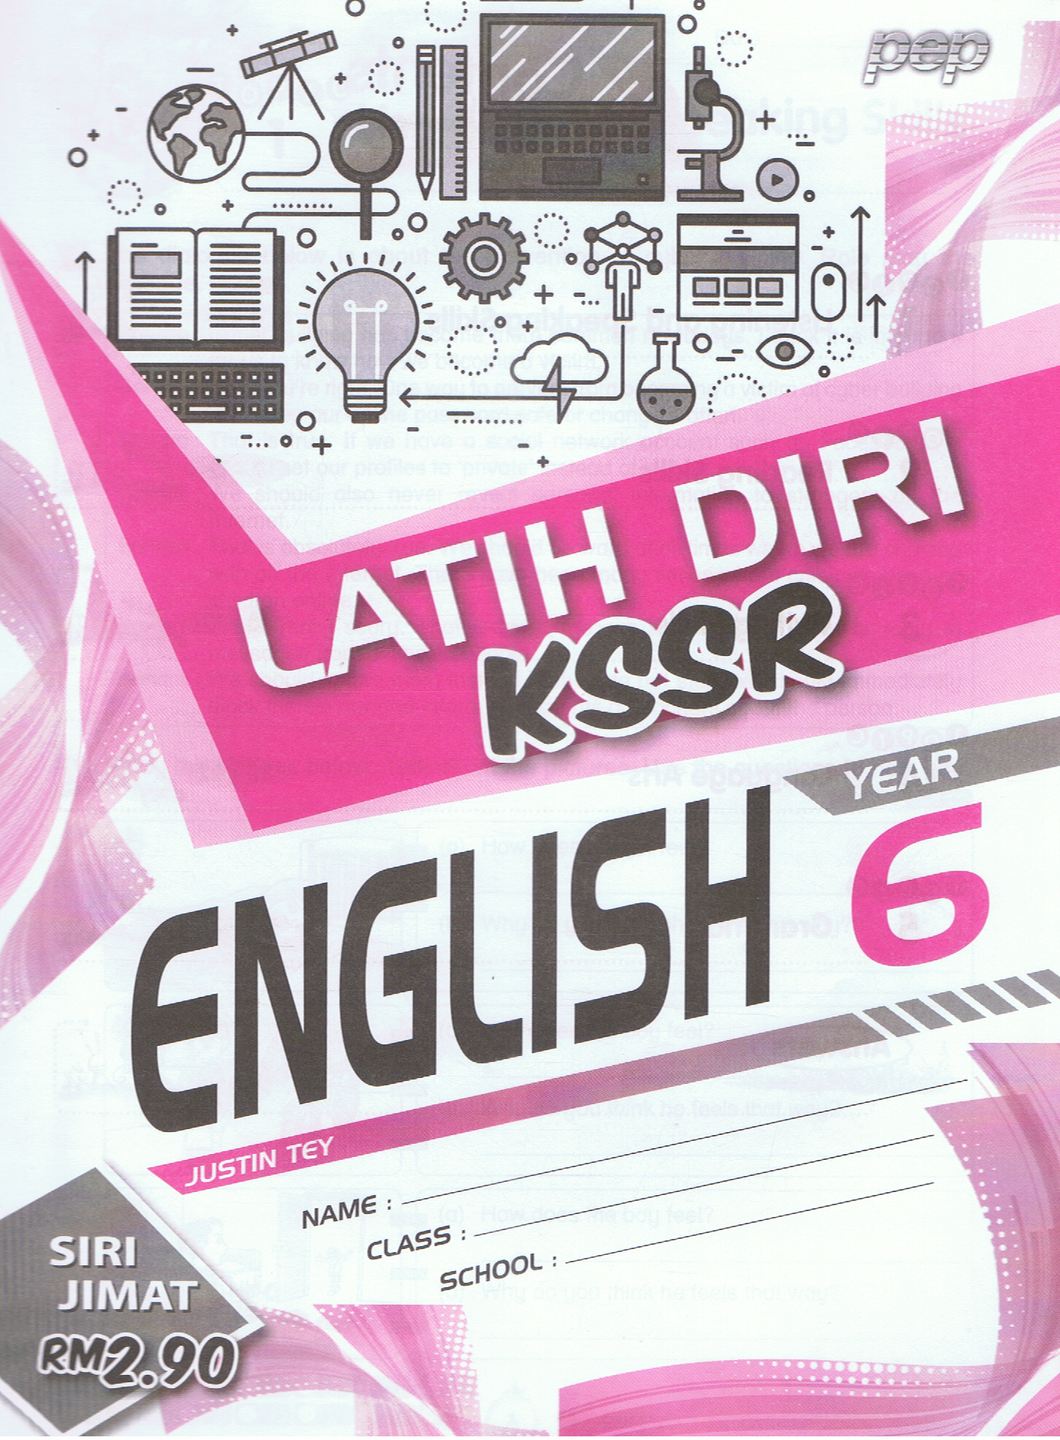 Latih Diri: English Year 6